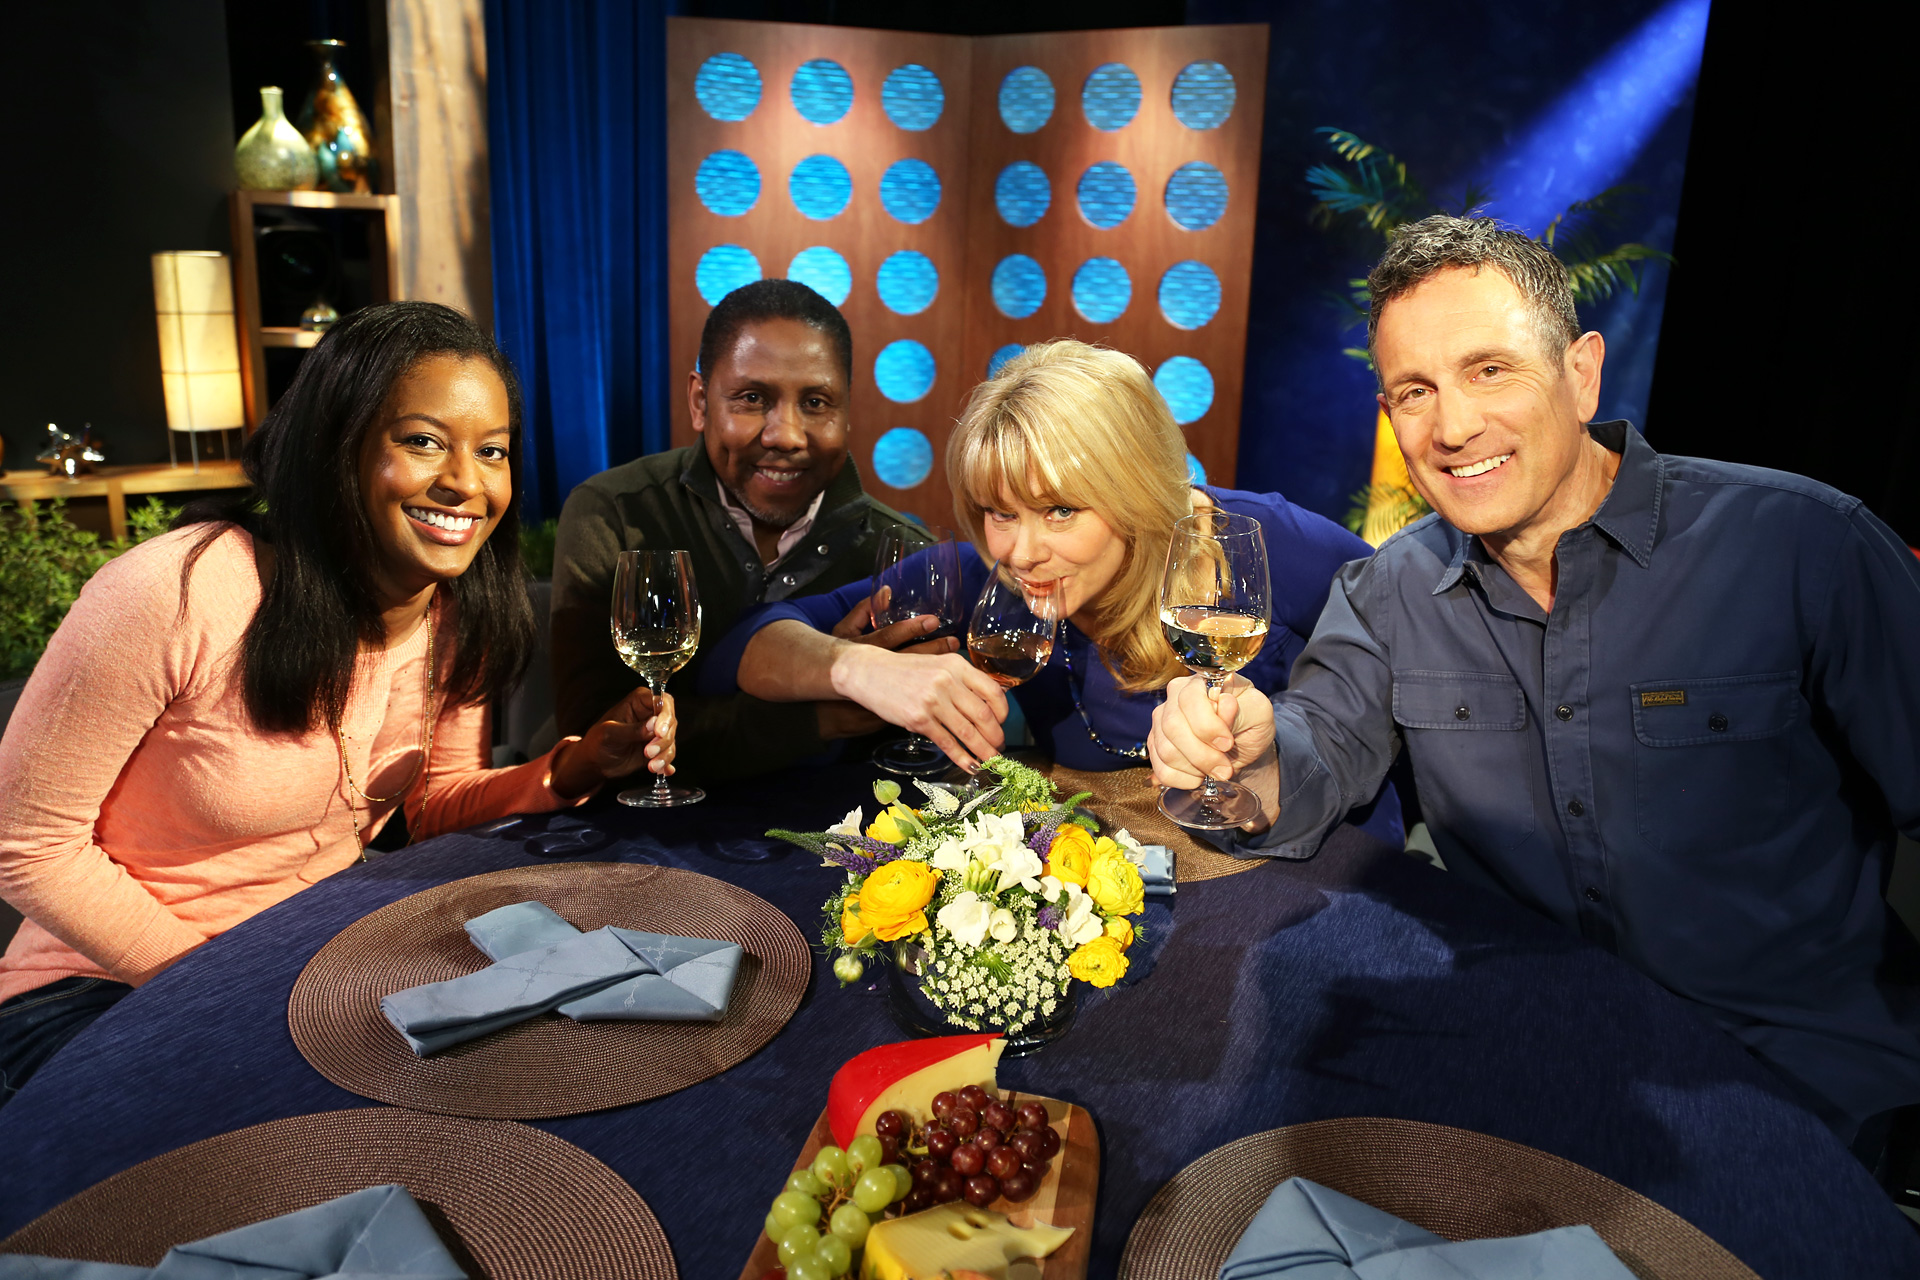 Host Leslie Sbrocco and guests on the set of the episode 6 of season 11.